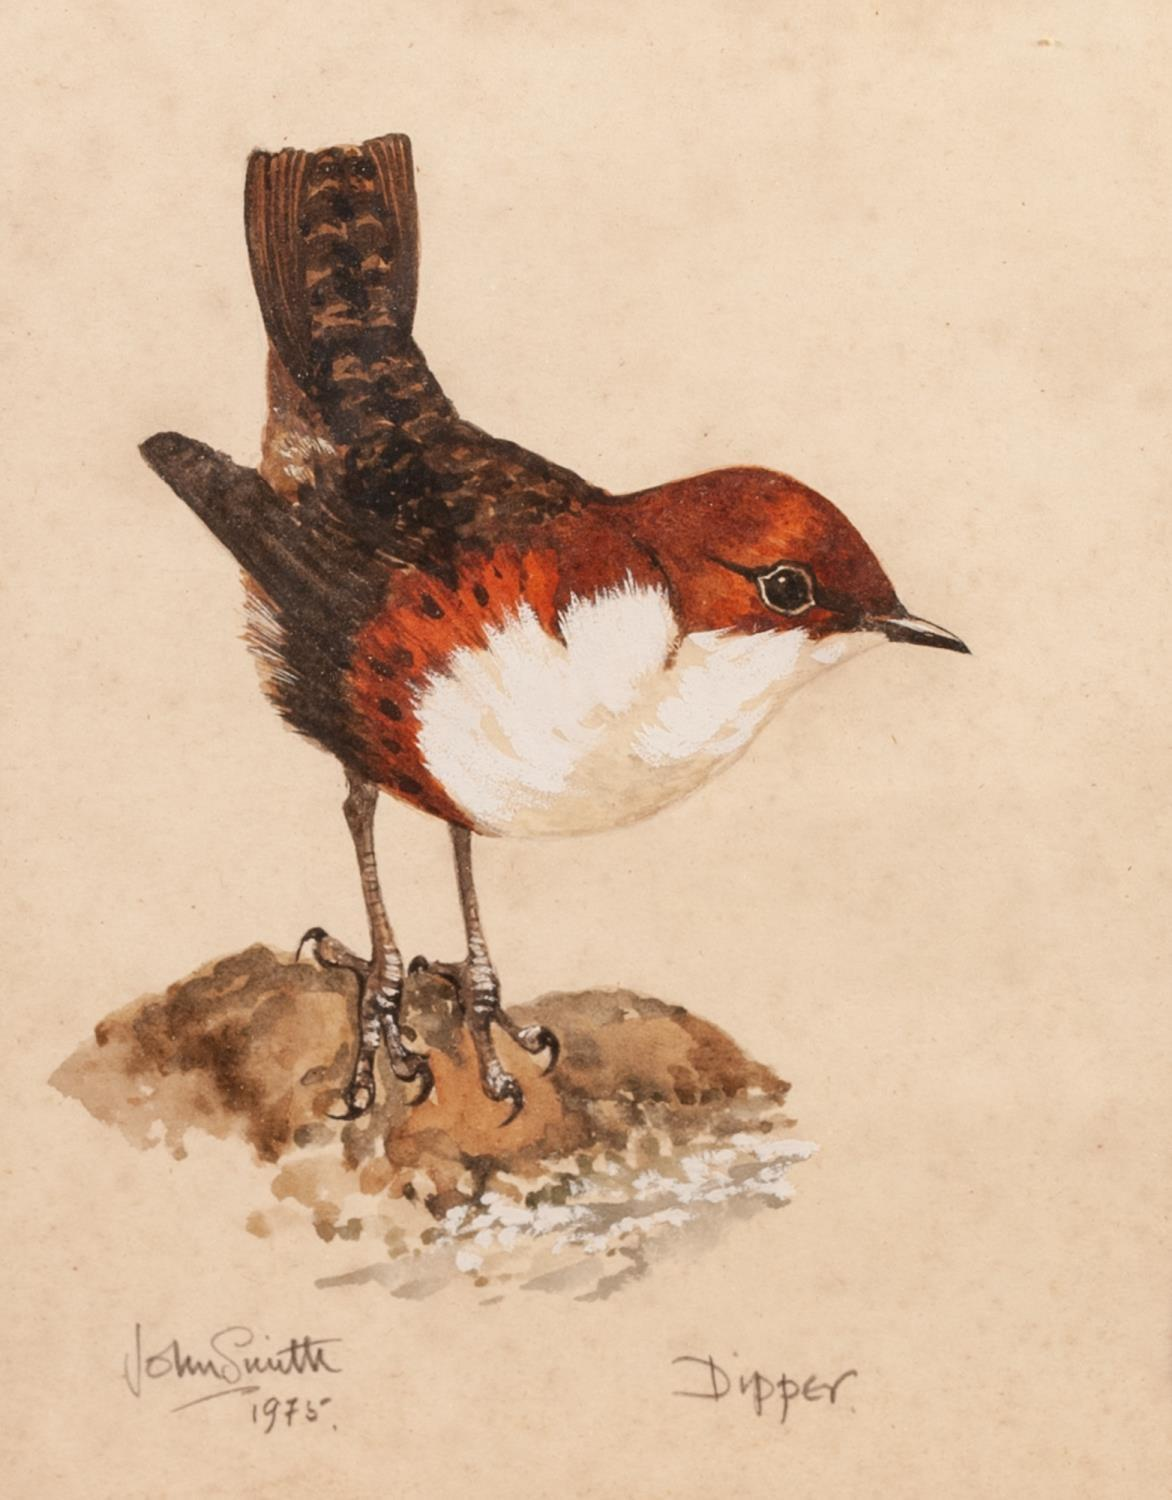 Lot 179 - JOHN SMITH (TWENTIETH CENTURY) TWO WATERCOLOUR DRAWINGS Studies of birds, ?Dipper? and ?Red-backed